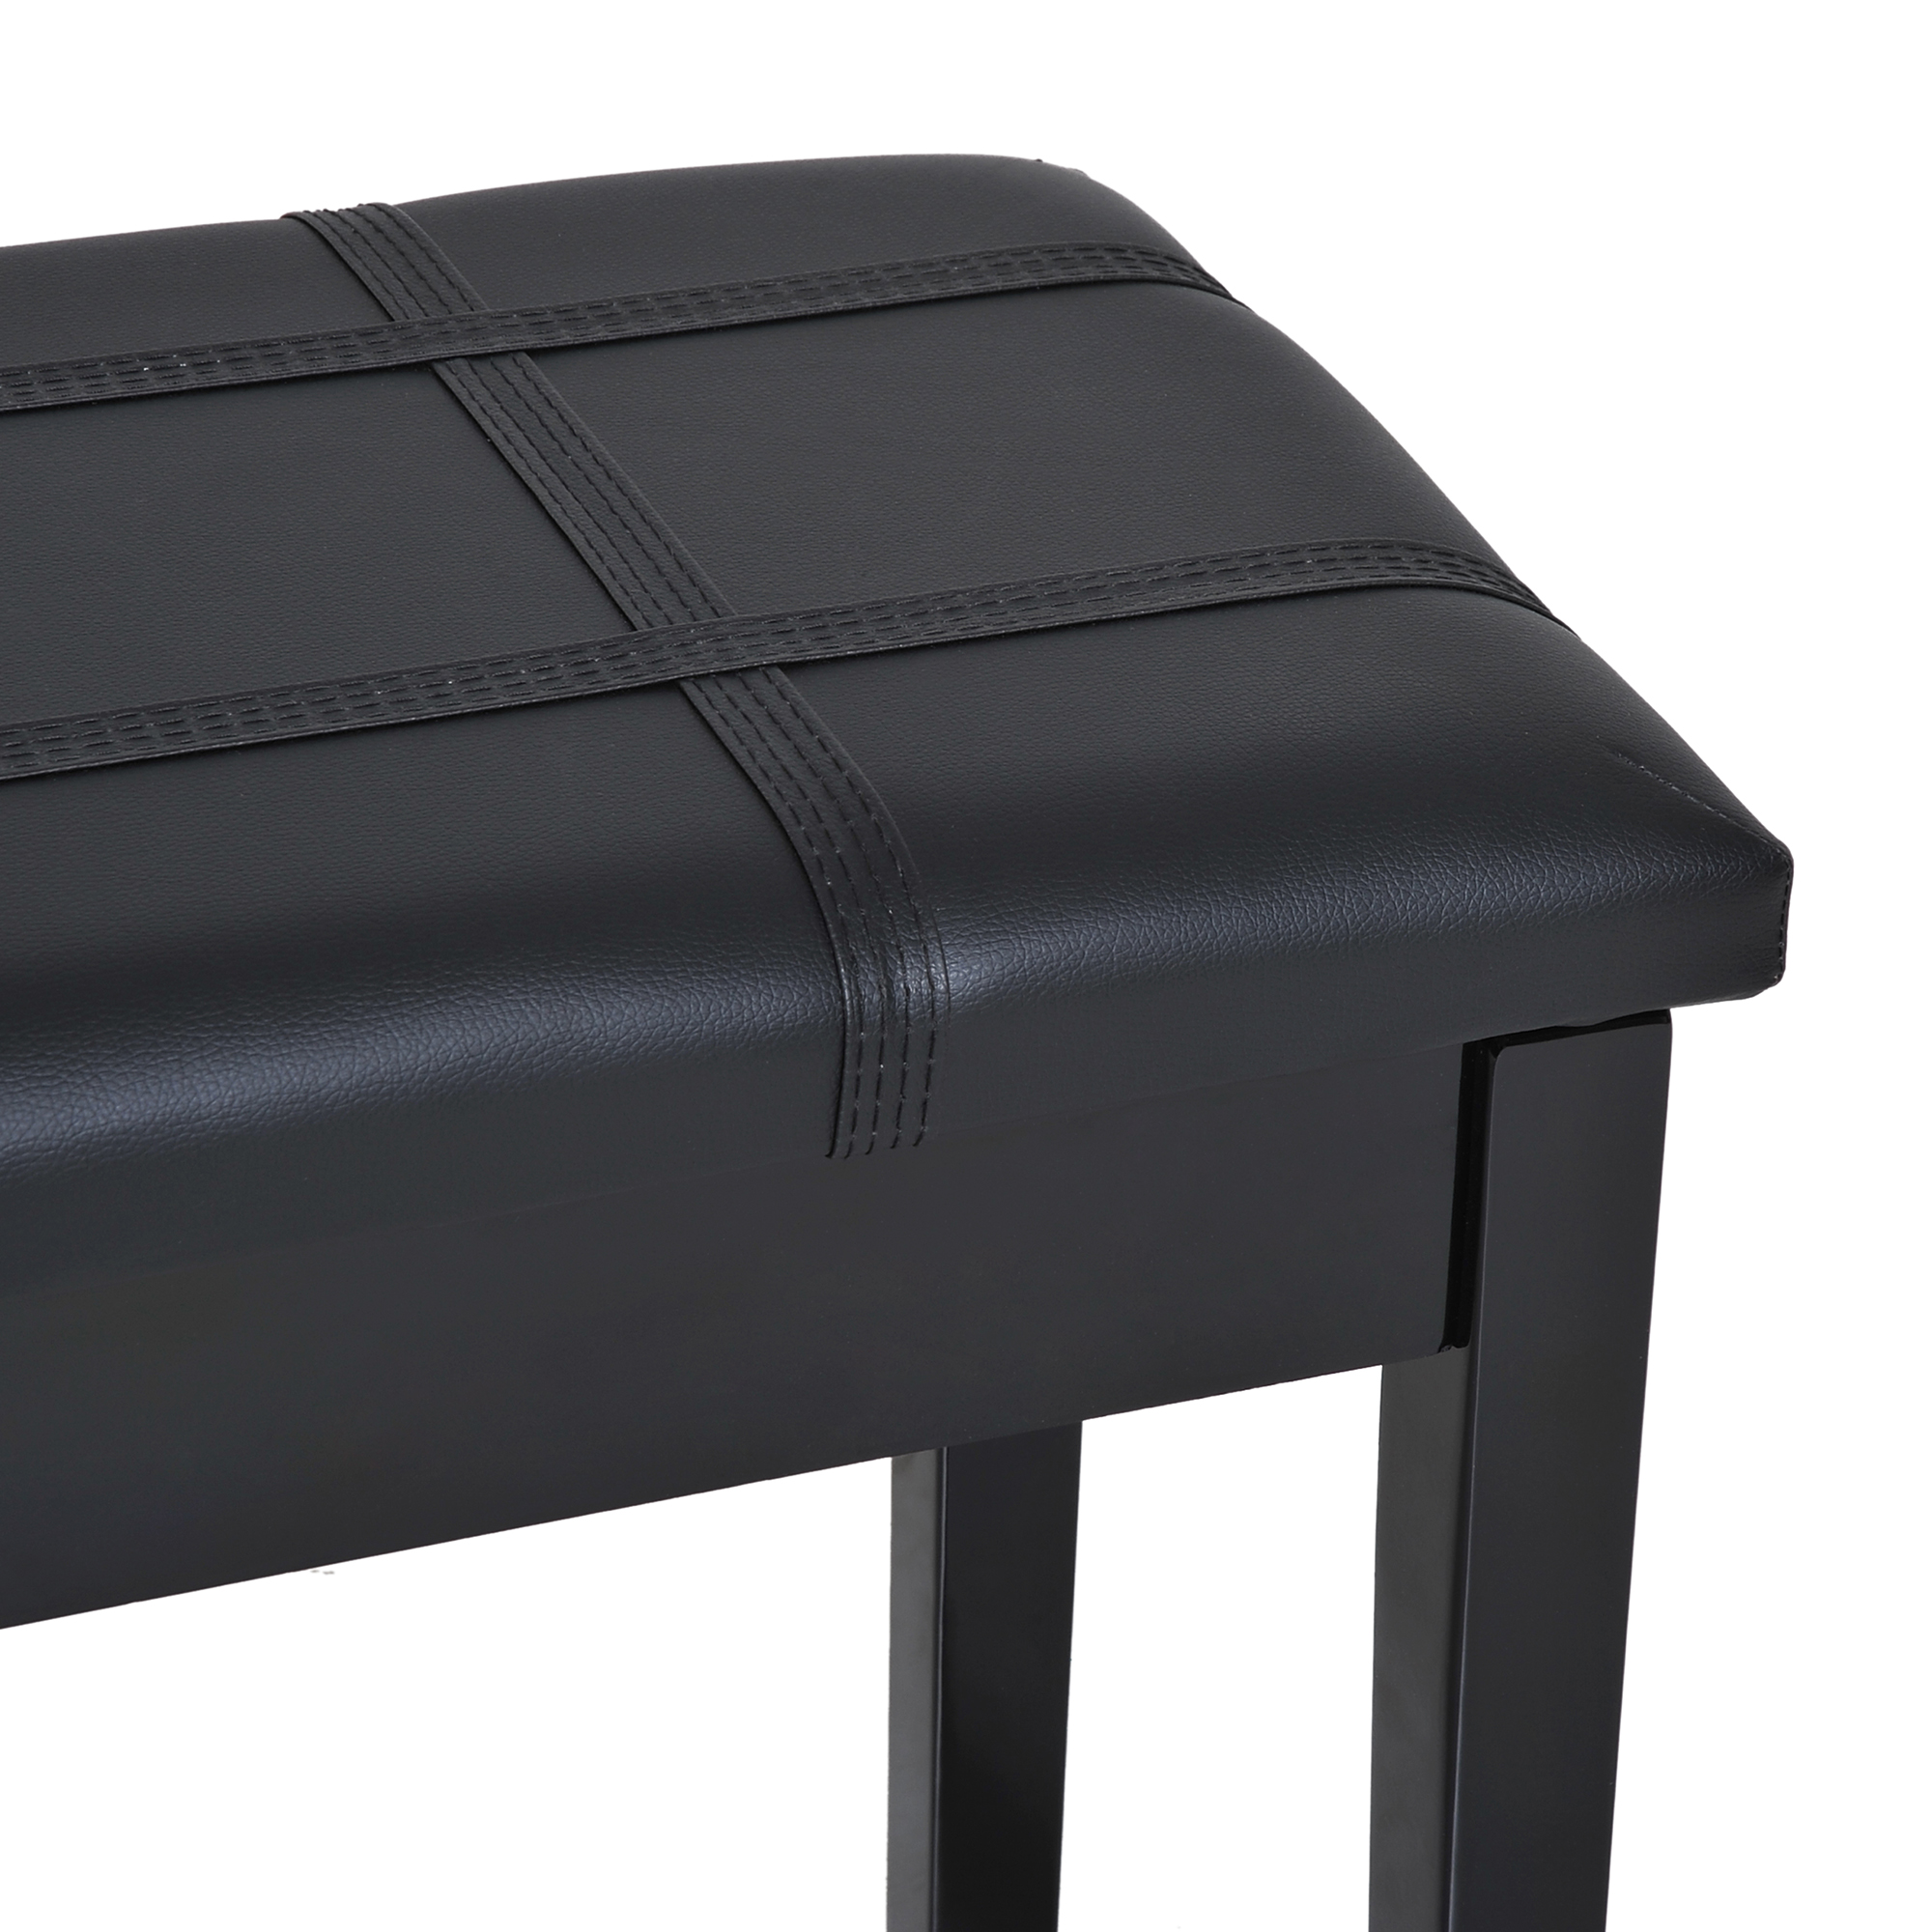 Two-Person-Lift-Top-Piano-Storage-Bench-Faux-Leather-Keyboard-Stool-Birchwood thumbnail 6